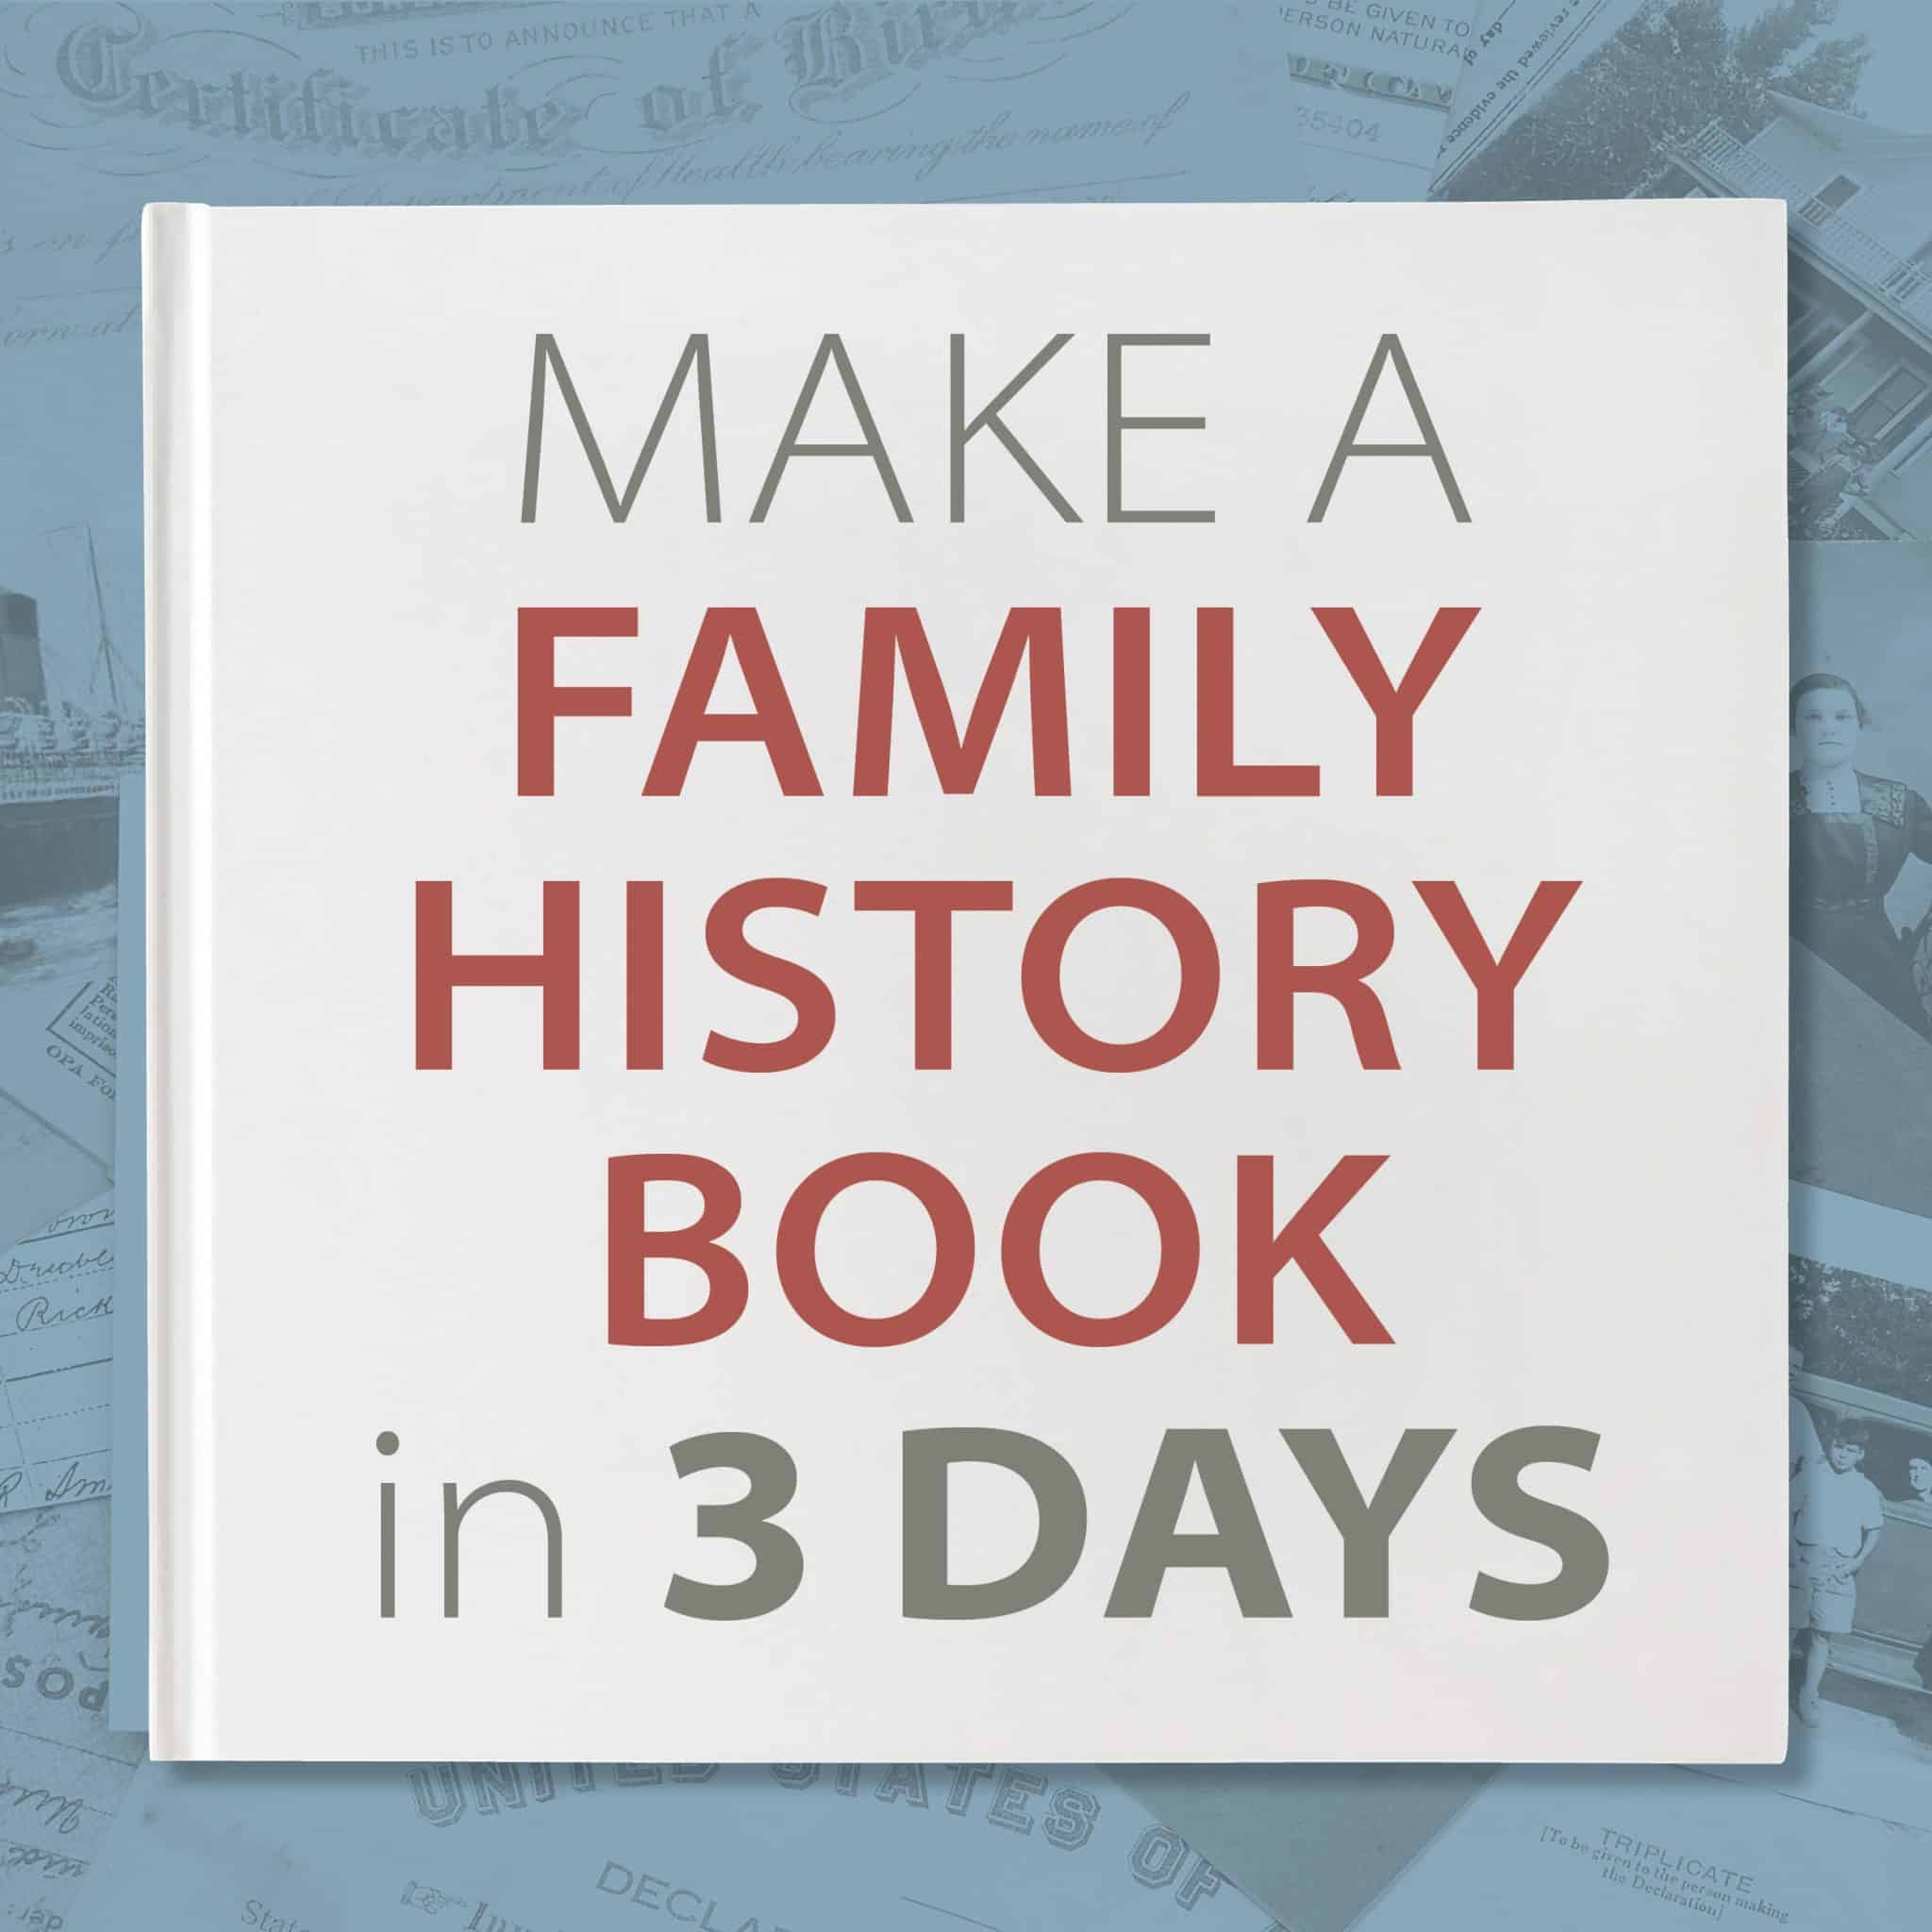 Make a family history book in 3 days.